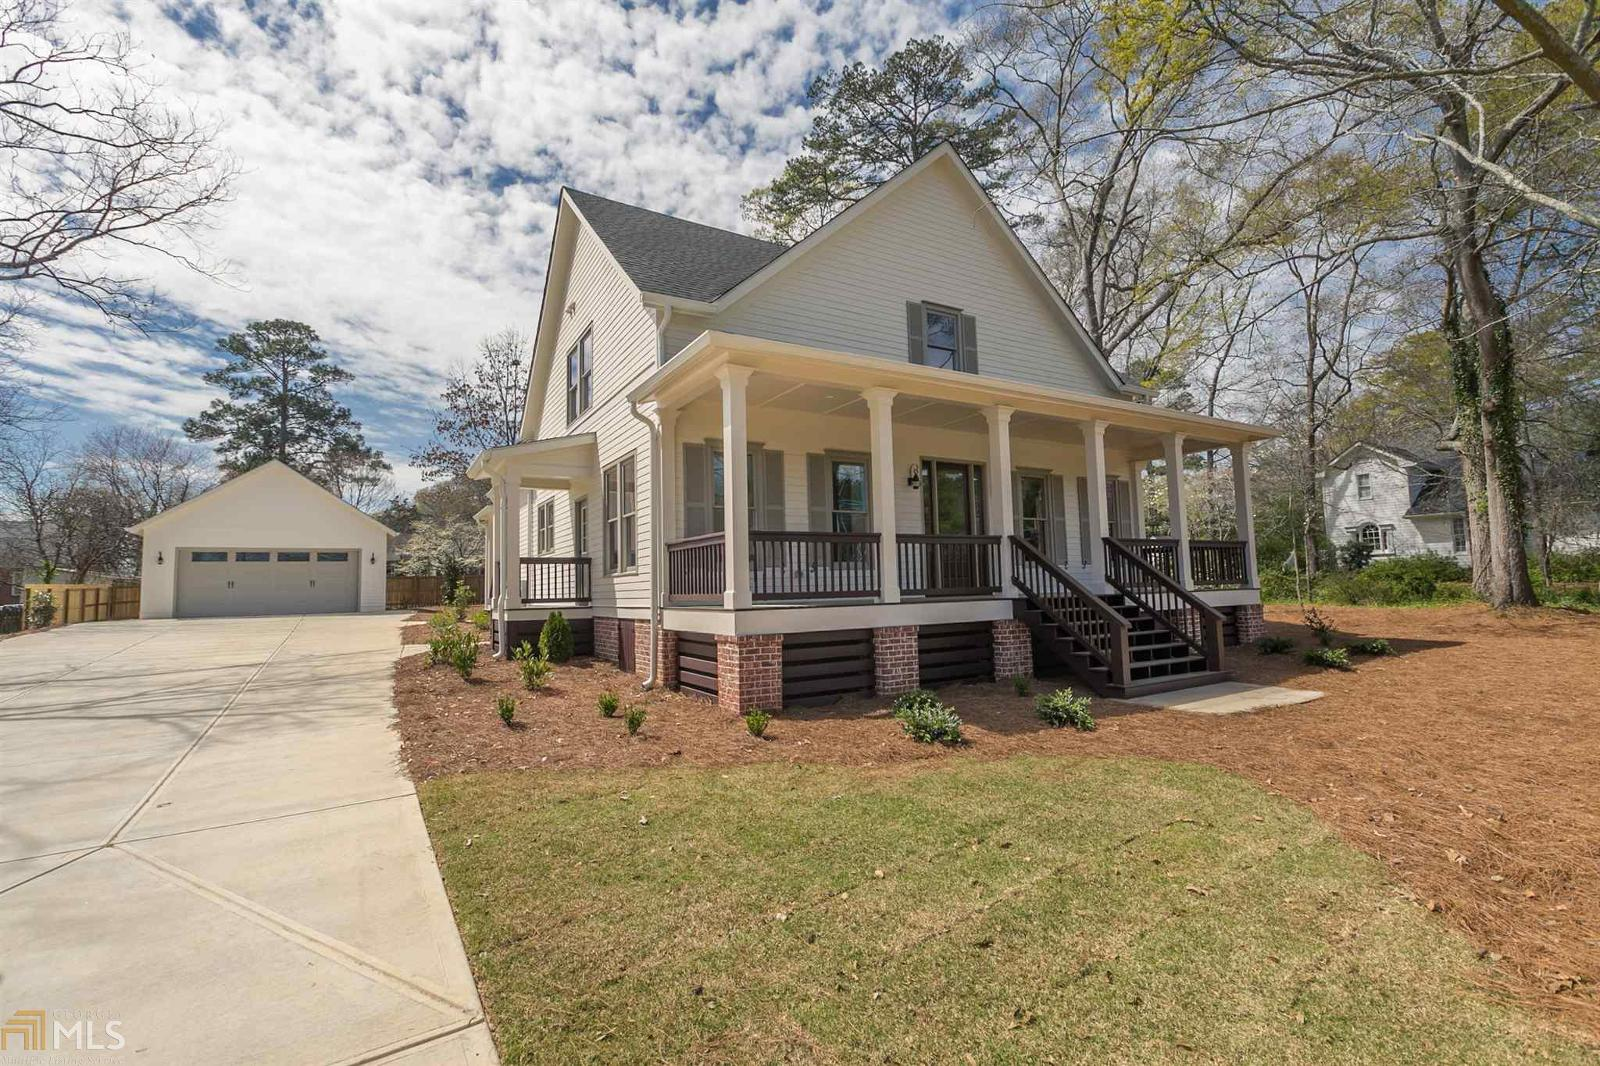 800 College Dr Madison Ga Mls 8277655 Better Homes And Gardens Real Estate